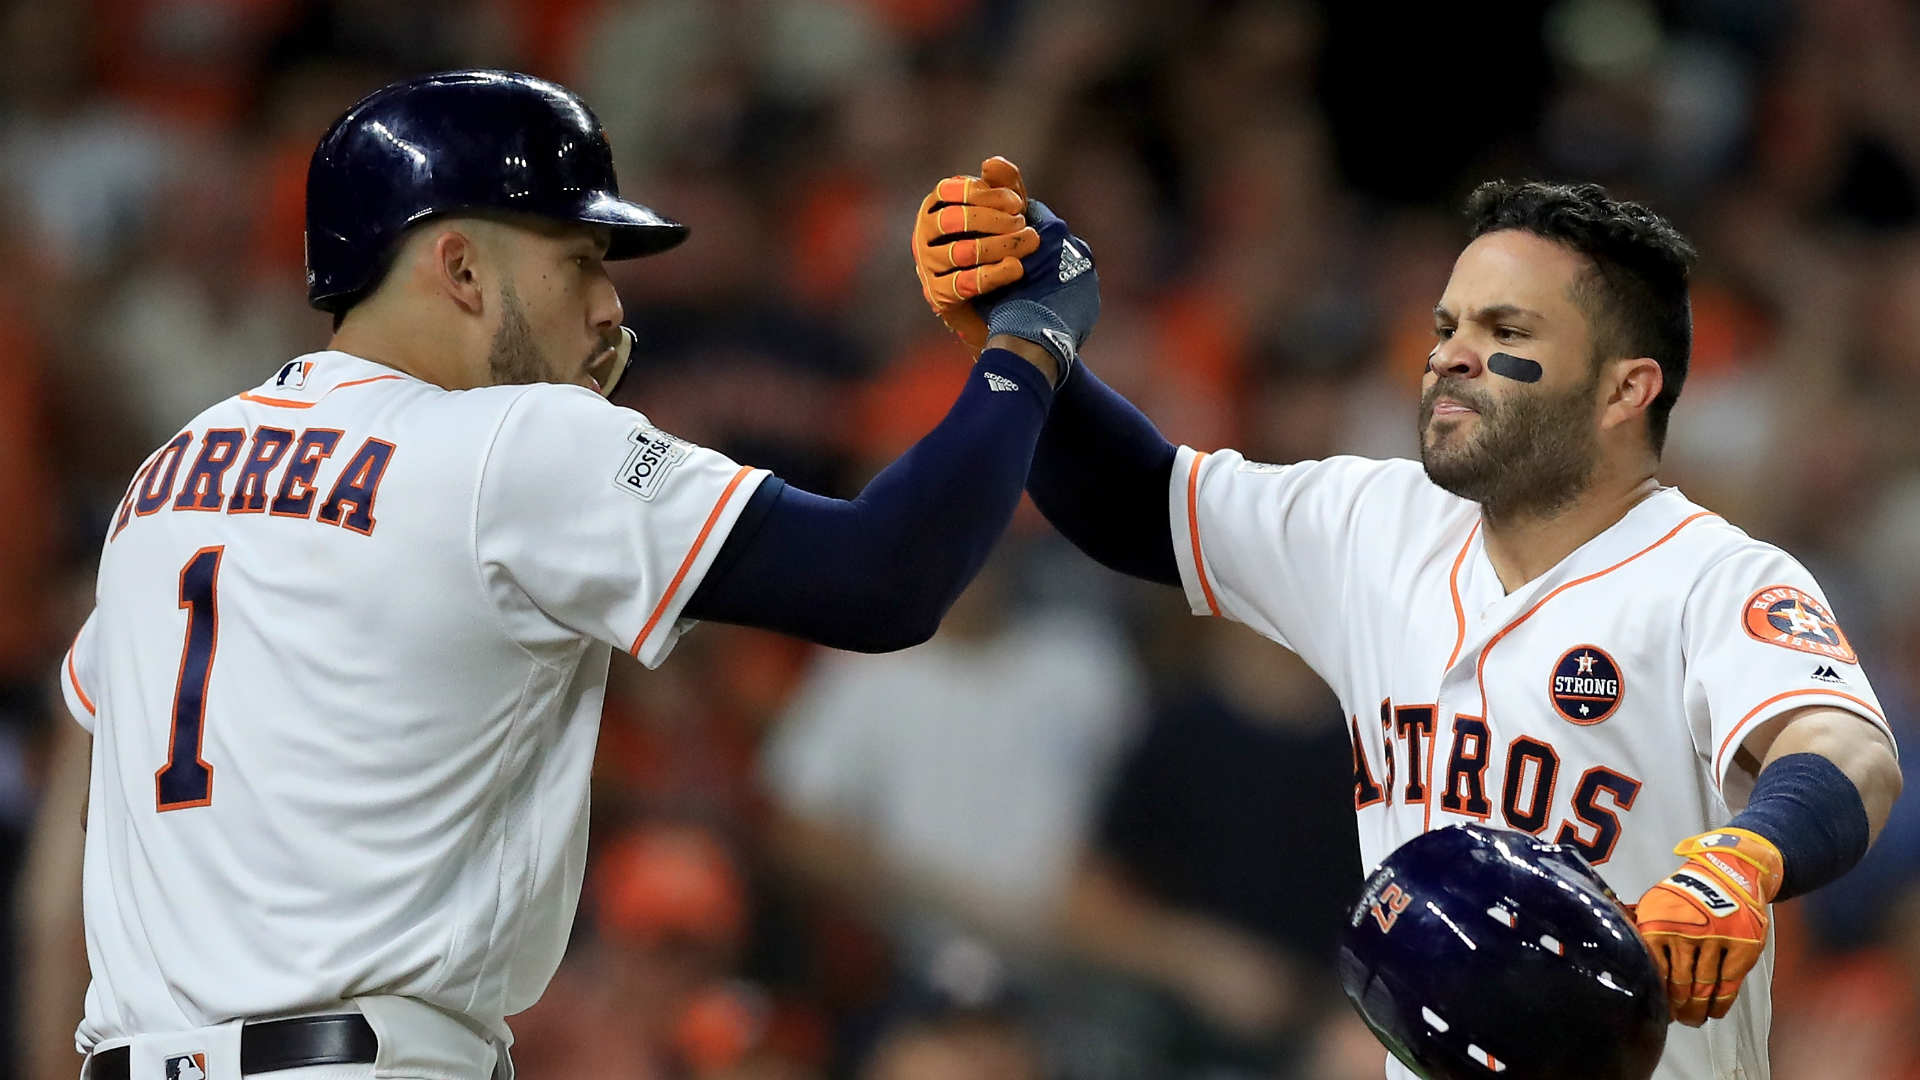 Astros advance to World Series after taking Yankees in Game 7